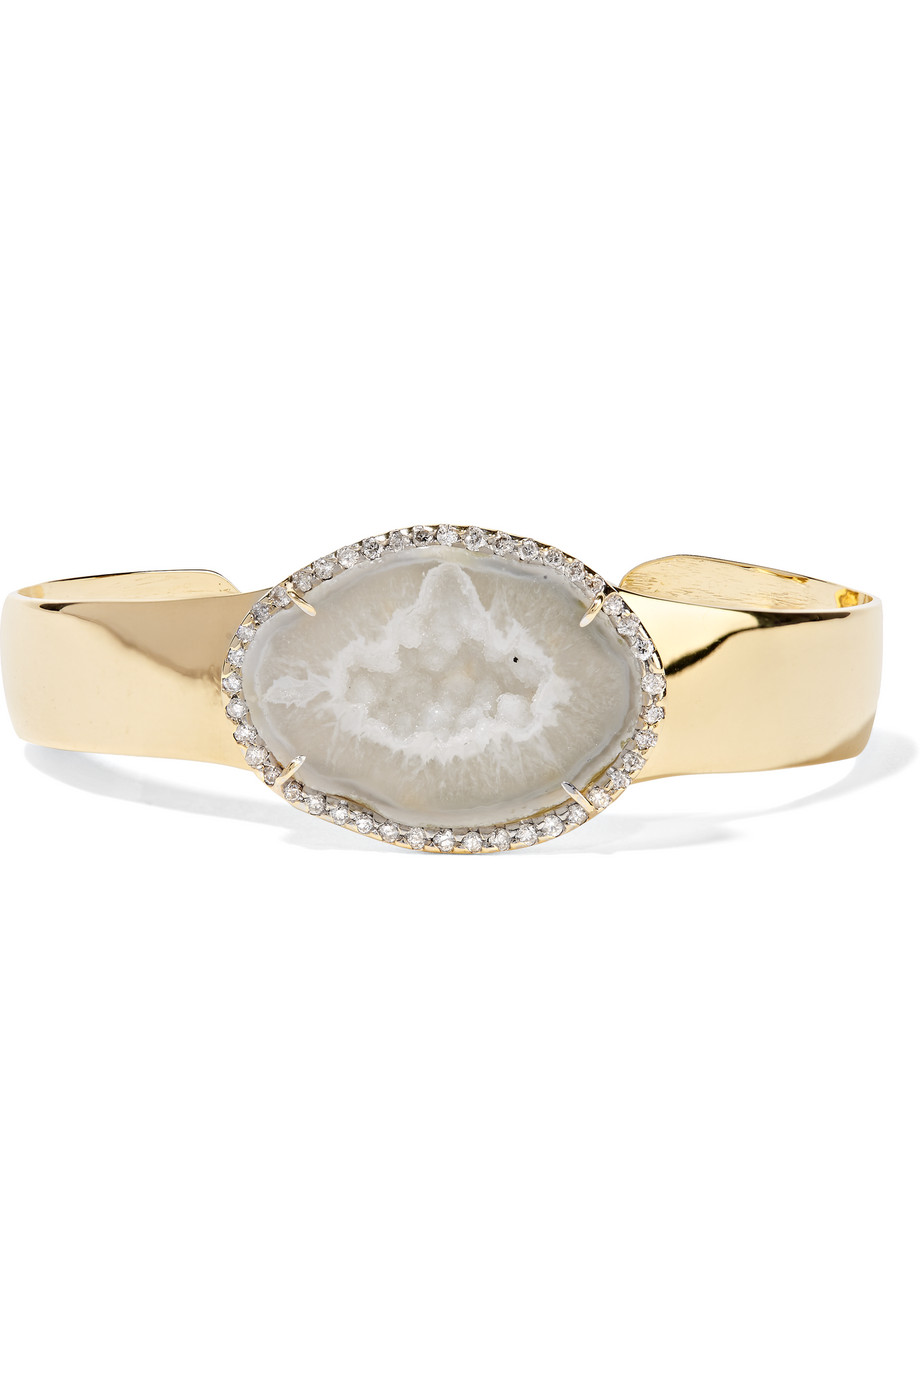 18-Karat Gold, Geode and Diamond Cuff, Kimberly Mcdonald, Women's